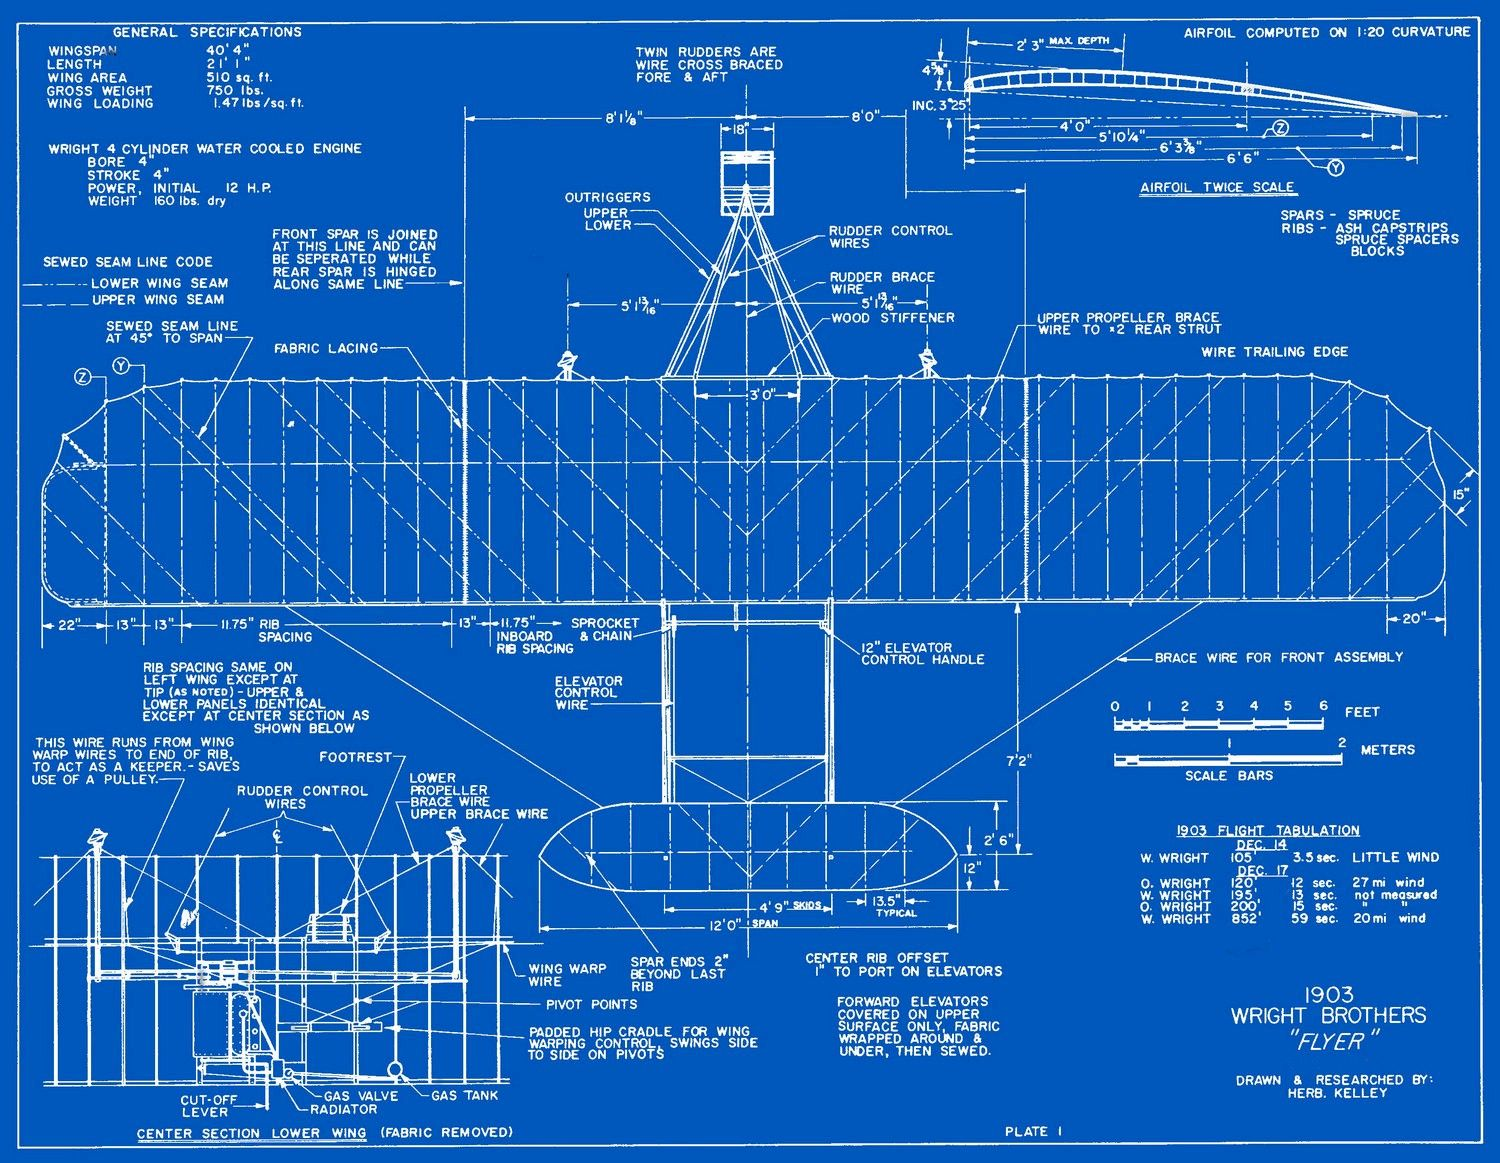 1903flyerblueprintsplate1g 15001163 print project wright flyer plans and drawings part of the wright brothers aeroplane company a virtual museum of pioneer aviation the invention of the airplane malvernweather